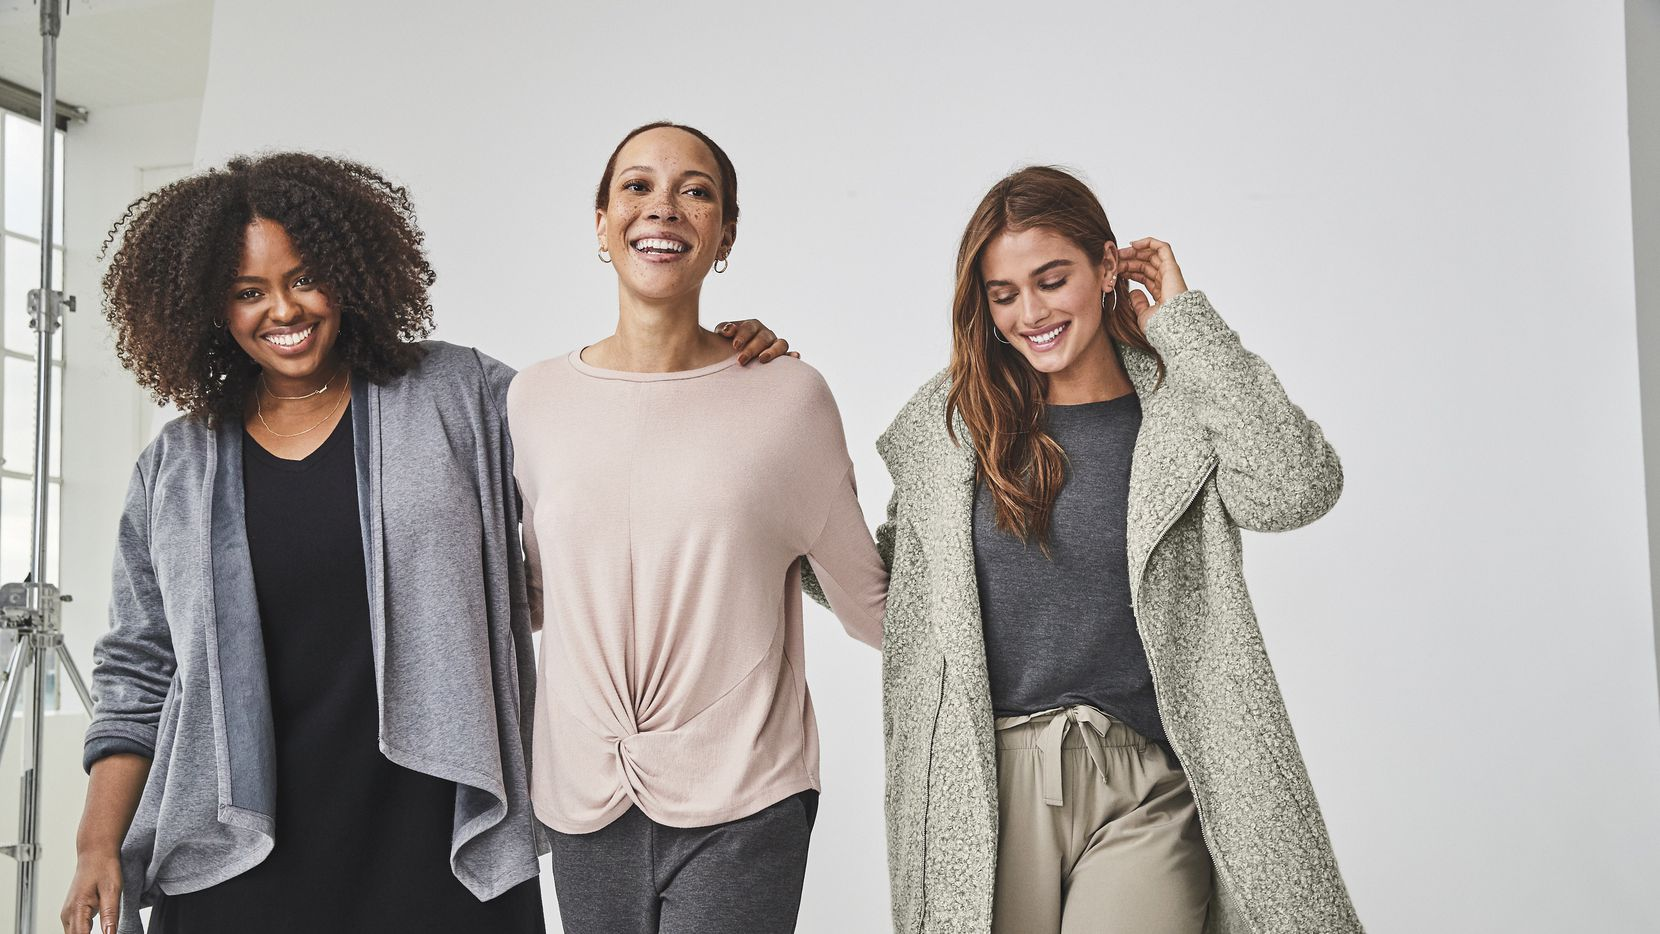 J.C. Penney launched a new women s clothing brand in November 2020 called Stylus. Penney has coined the mix and match pieces  styleisure.  The relaxed fit clothing has modern details including tapered legs, curved hems and twist-front tops. Sizes range from XS to 3X and pieces are priced from $26 to $89.860 255